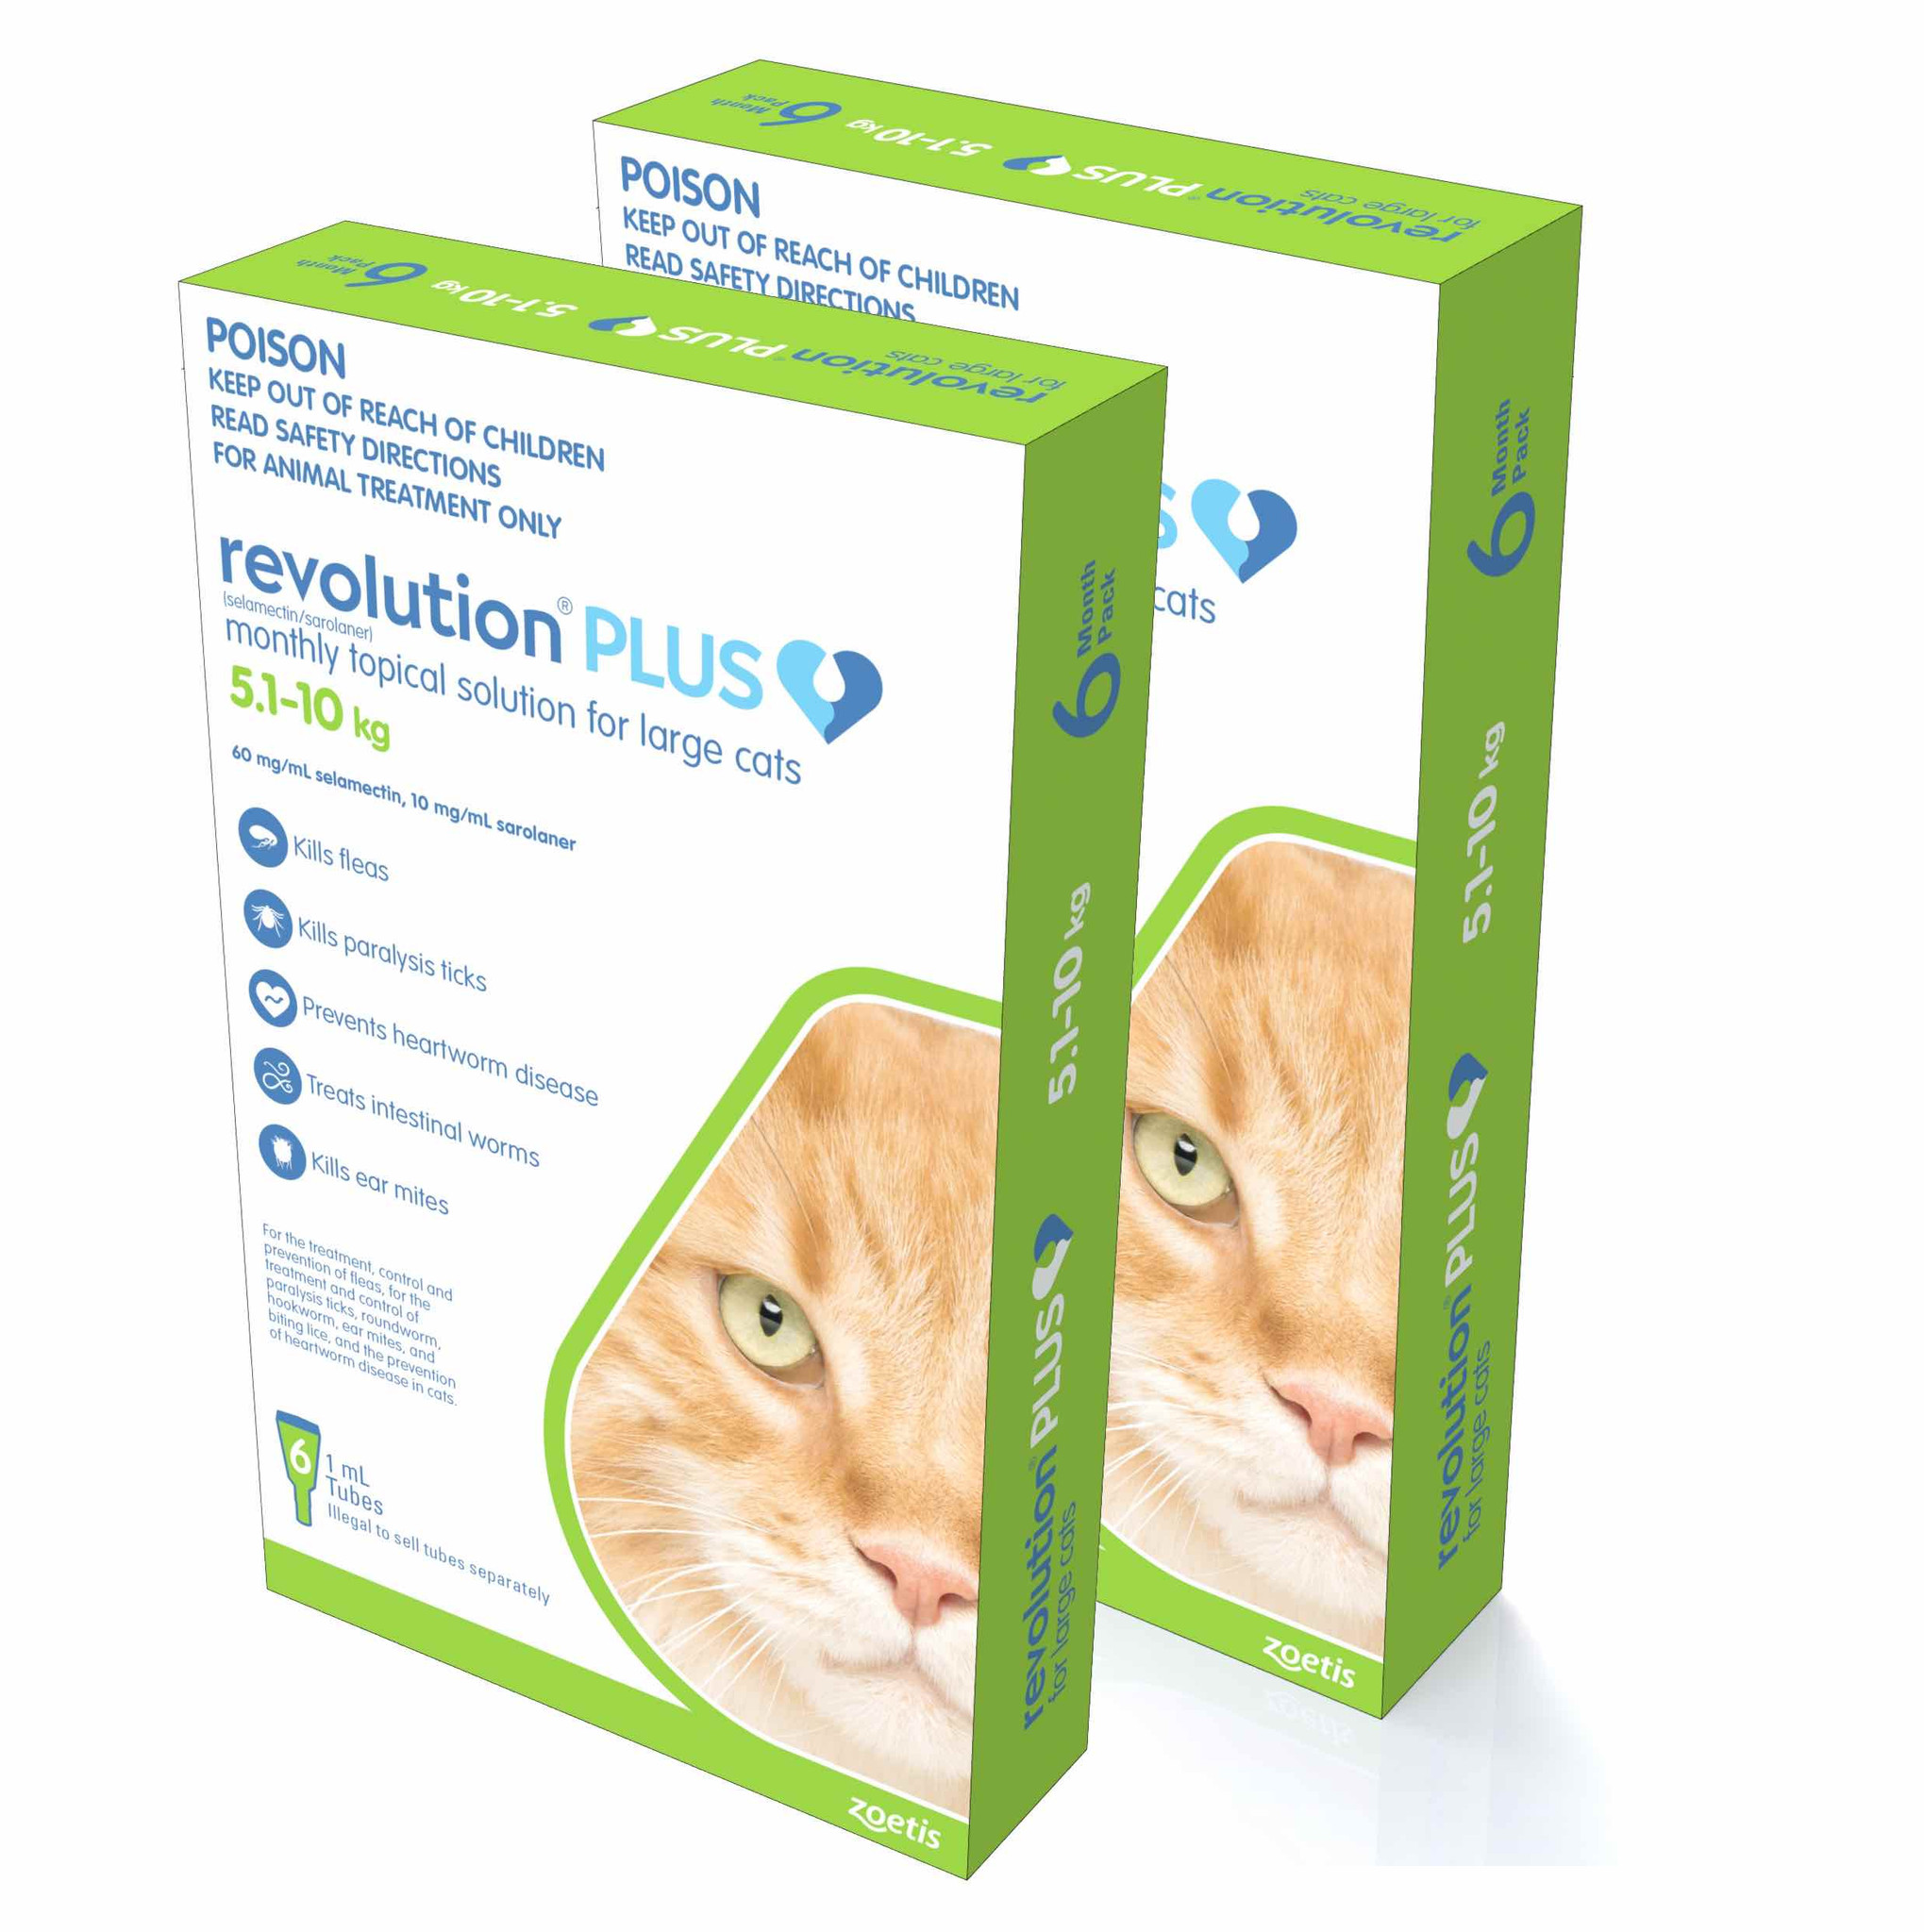 Revolution Plus For Large Cats 5 10kg Green 12 Doses Sierra Pet Products Australia